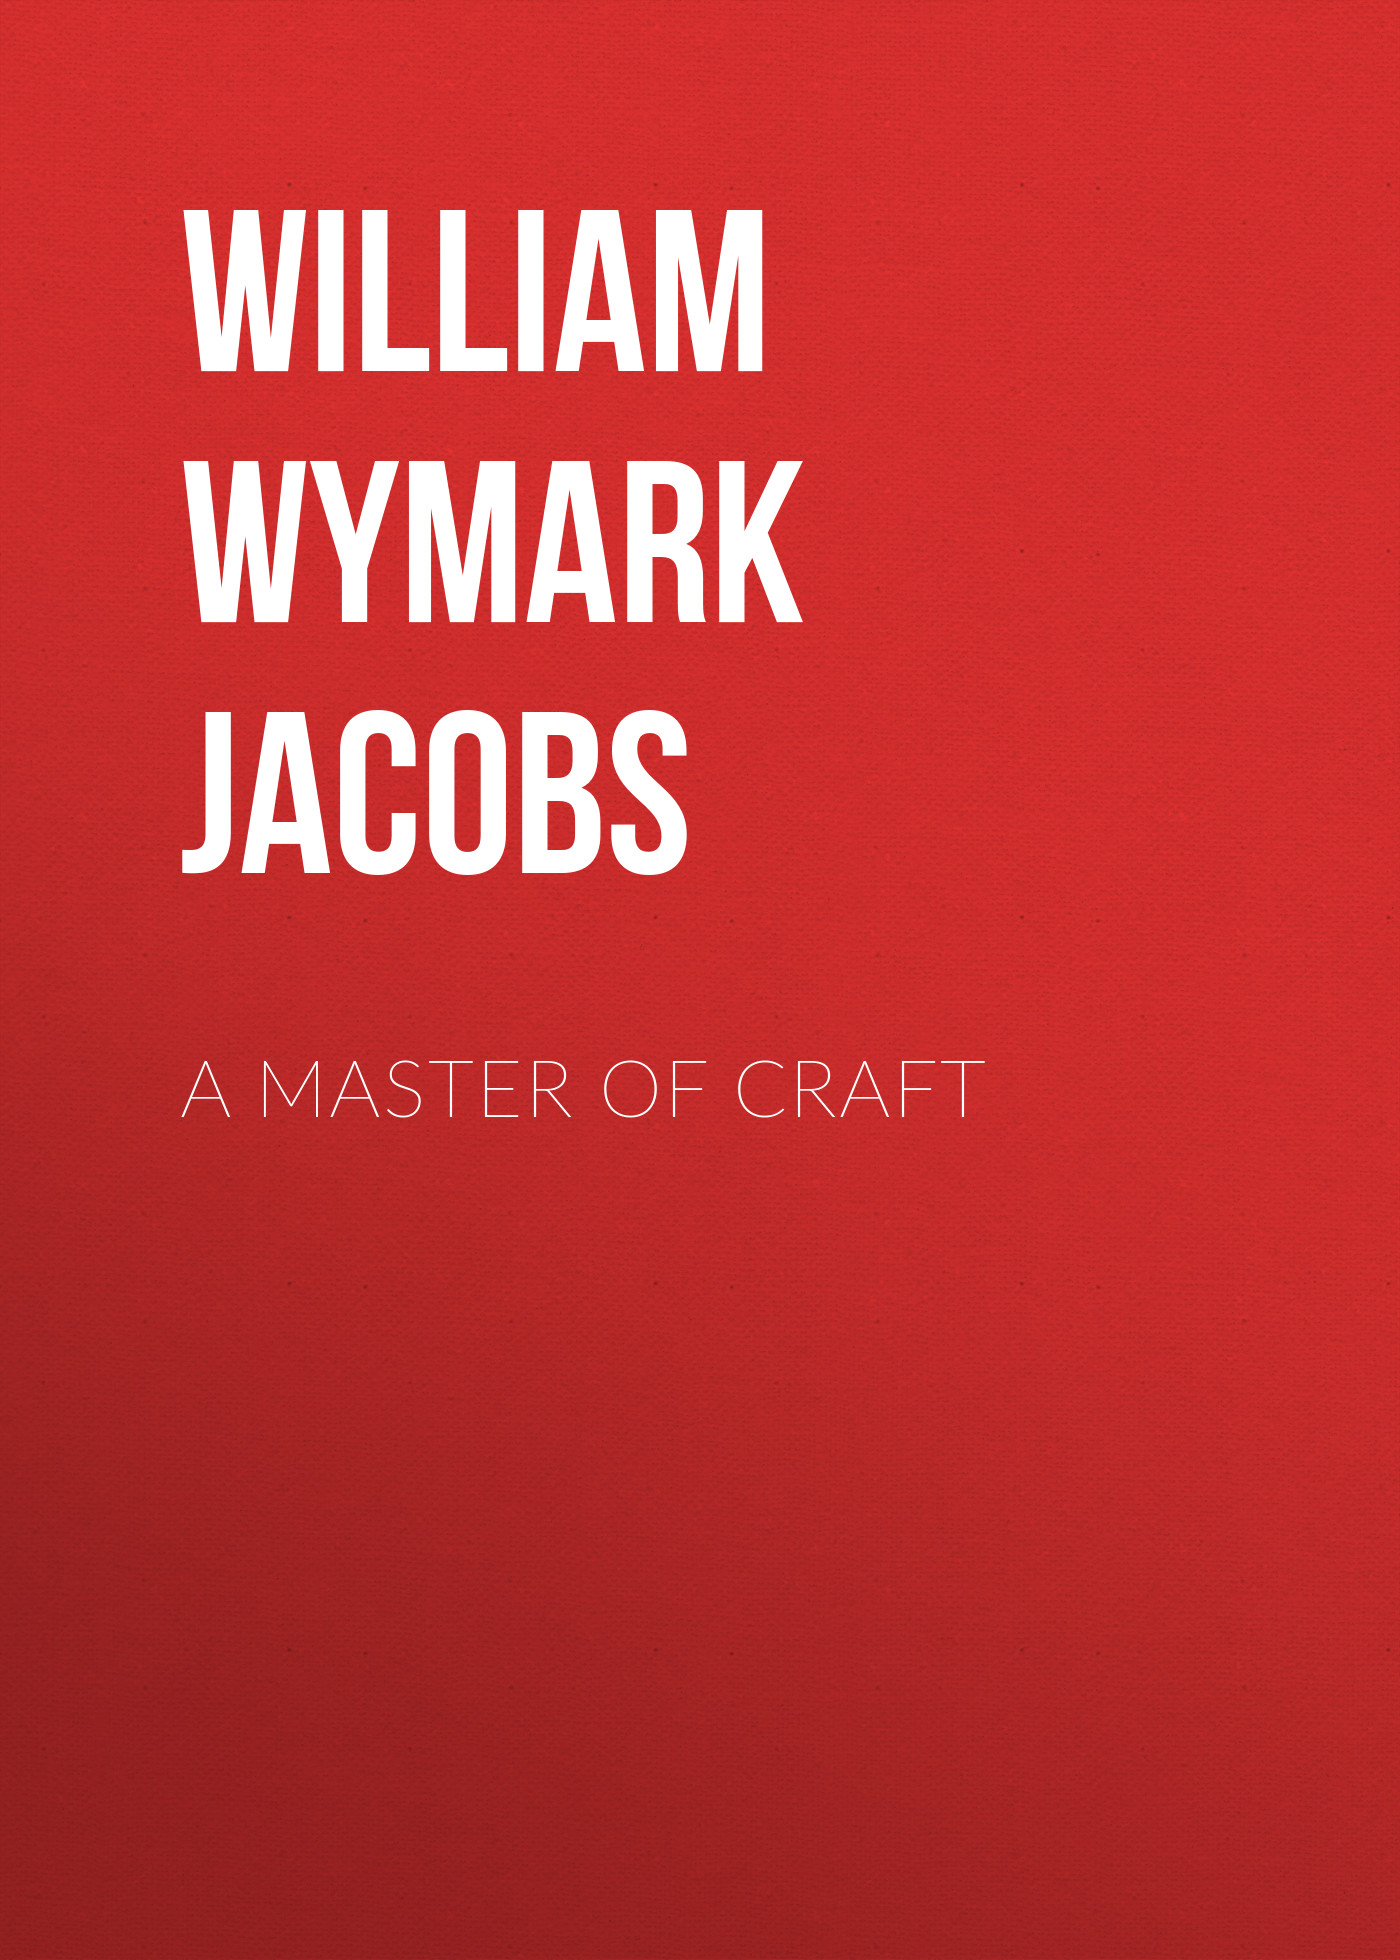 лучшая цена William Wymark Jacobs A Master Of Craft